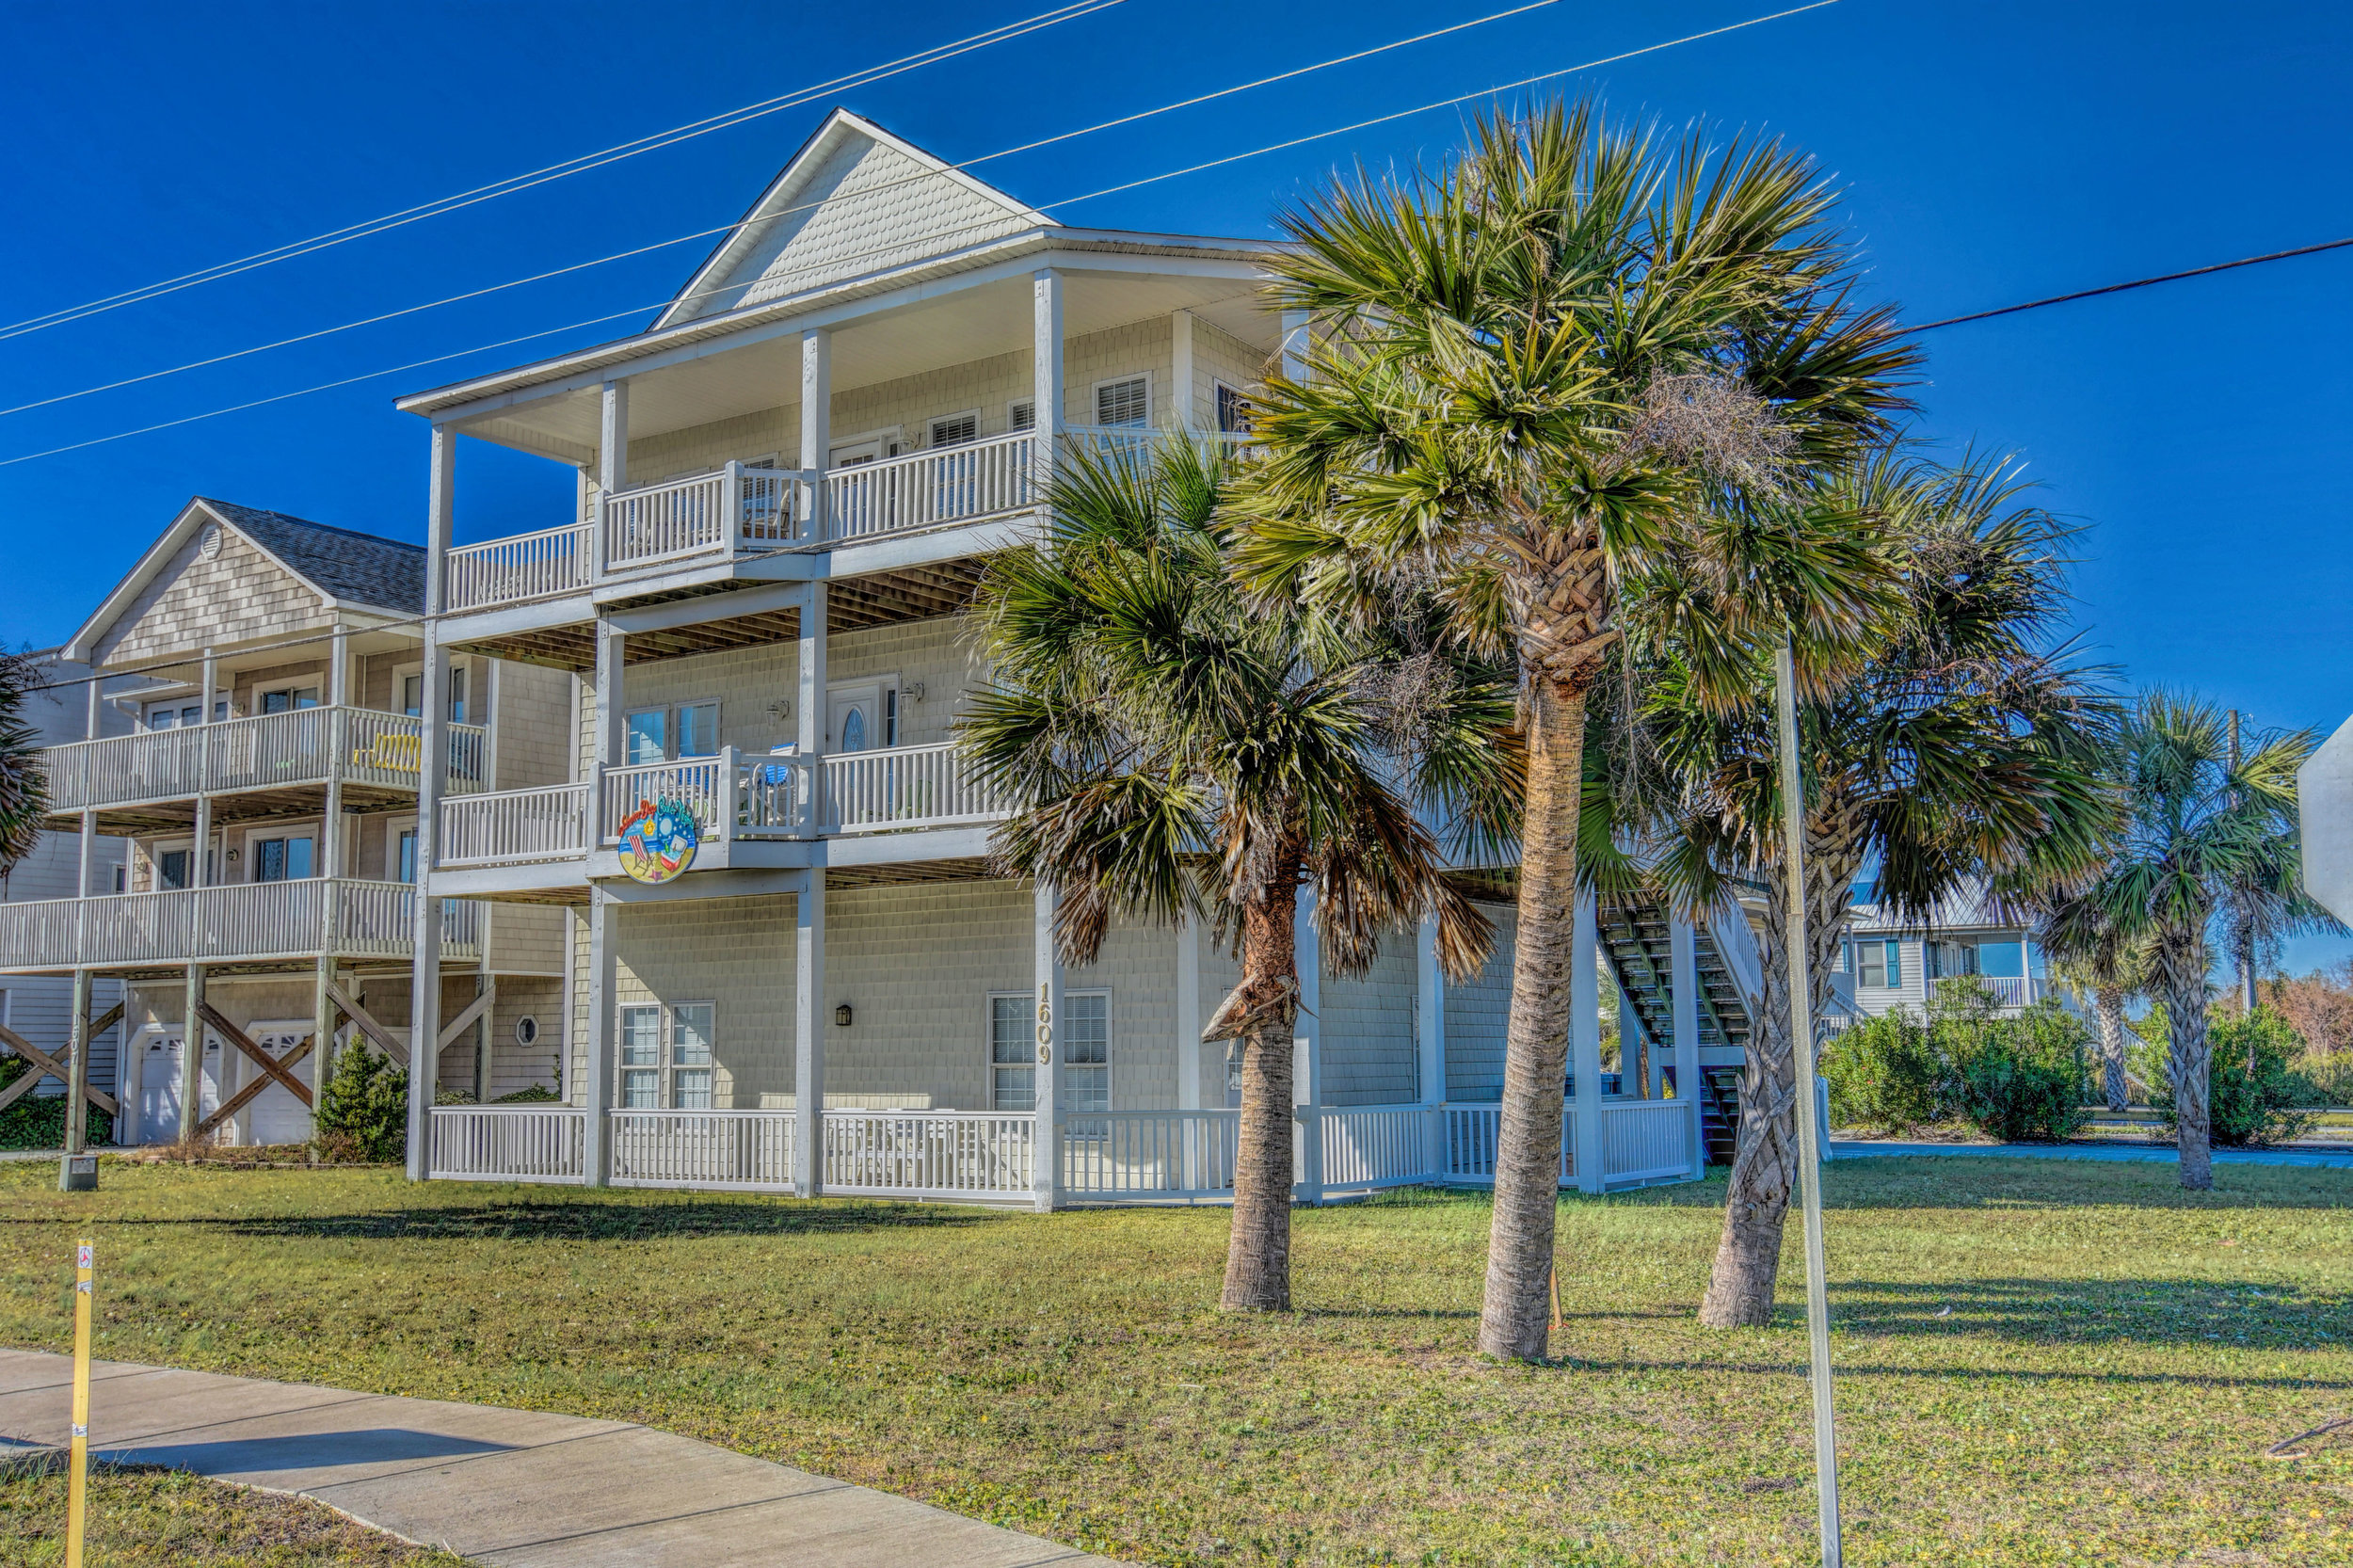 1609 N New River Dr Surf City-print-001-9-DSC 3732 3 4-4200x2800-300dpi.jpg